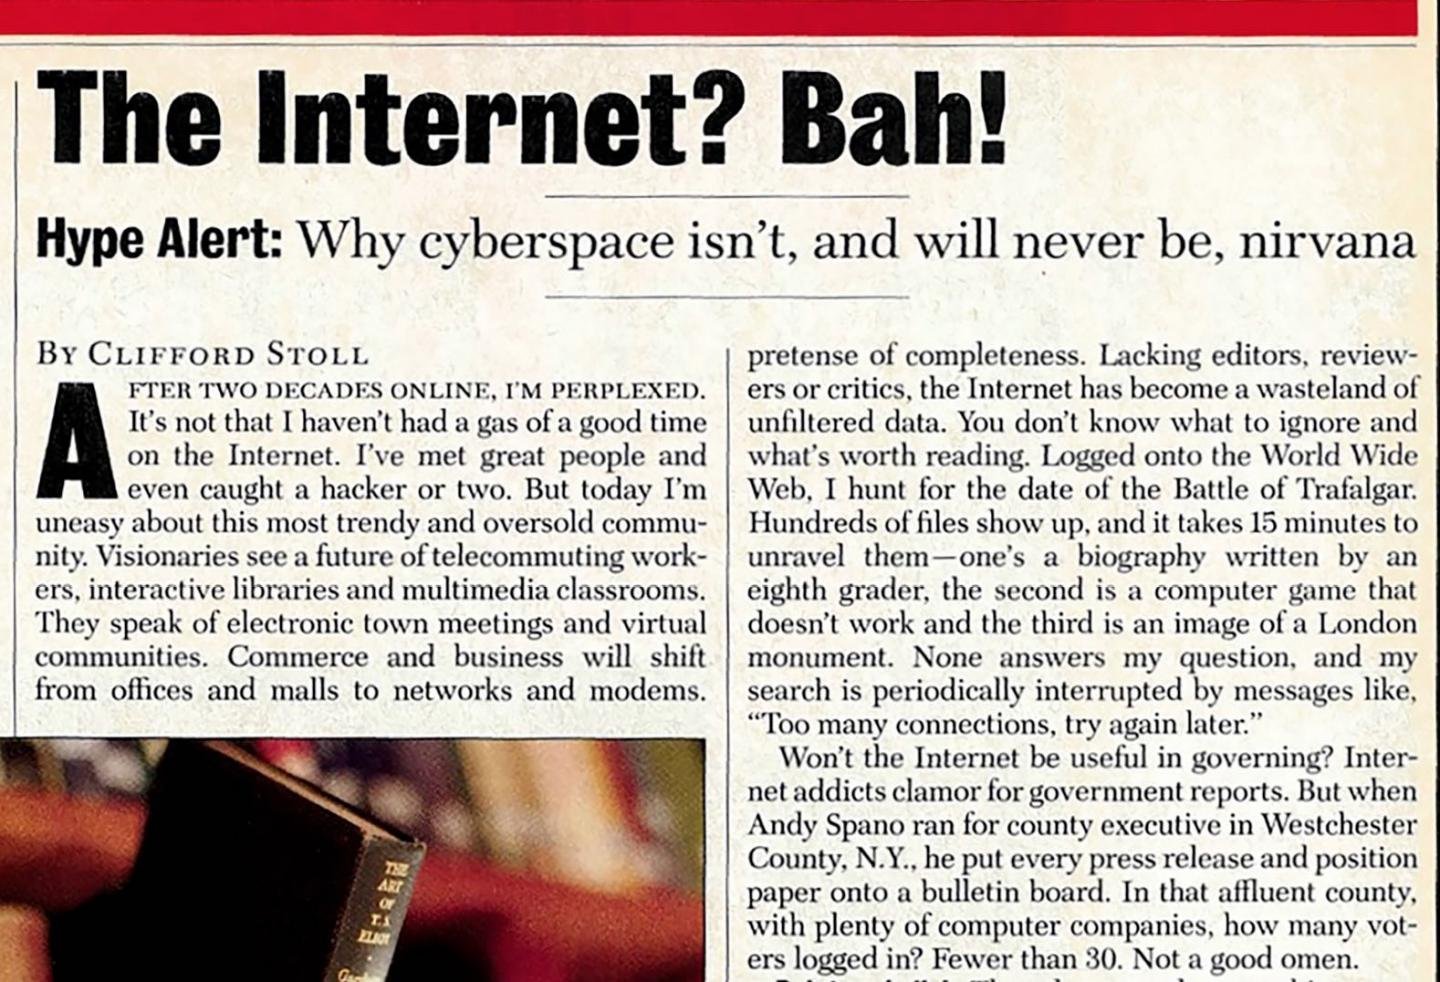 the internet and its future essay The internet of things is the name given to the computerization of everything in our lives already you can buy internet-enabled thermostats, light bulbs, refrigerators, and cars soon everything will be on the internet: the things we own, the things we interact with in public, autonomous things that interact with each other.